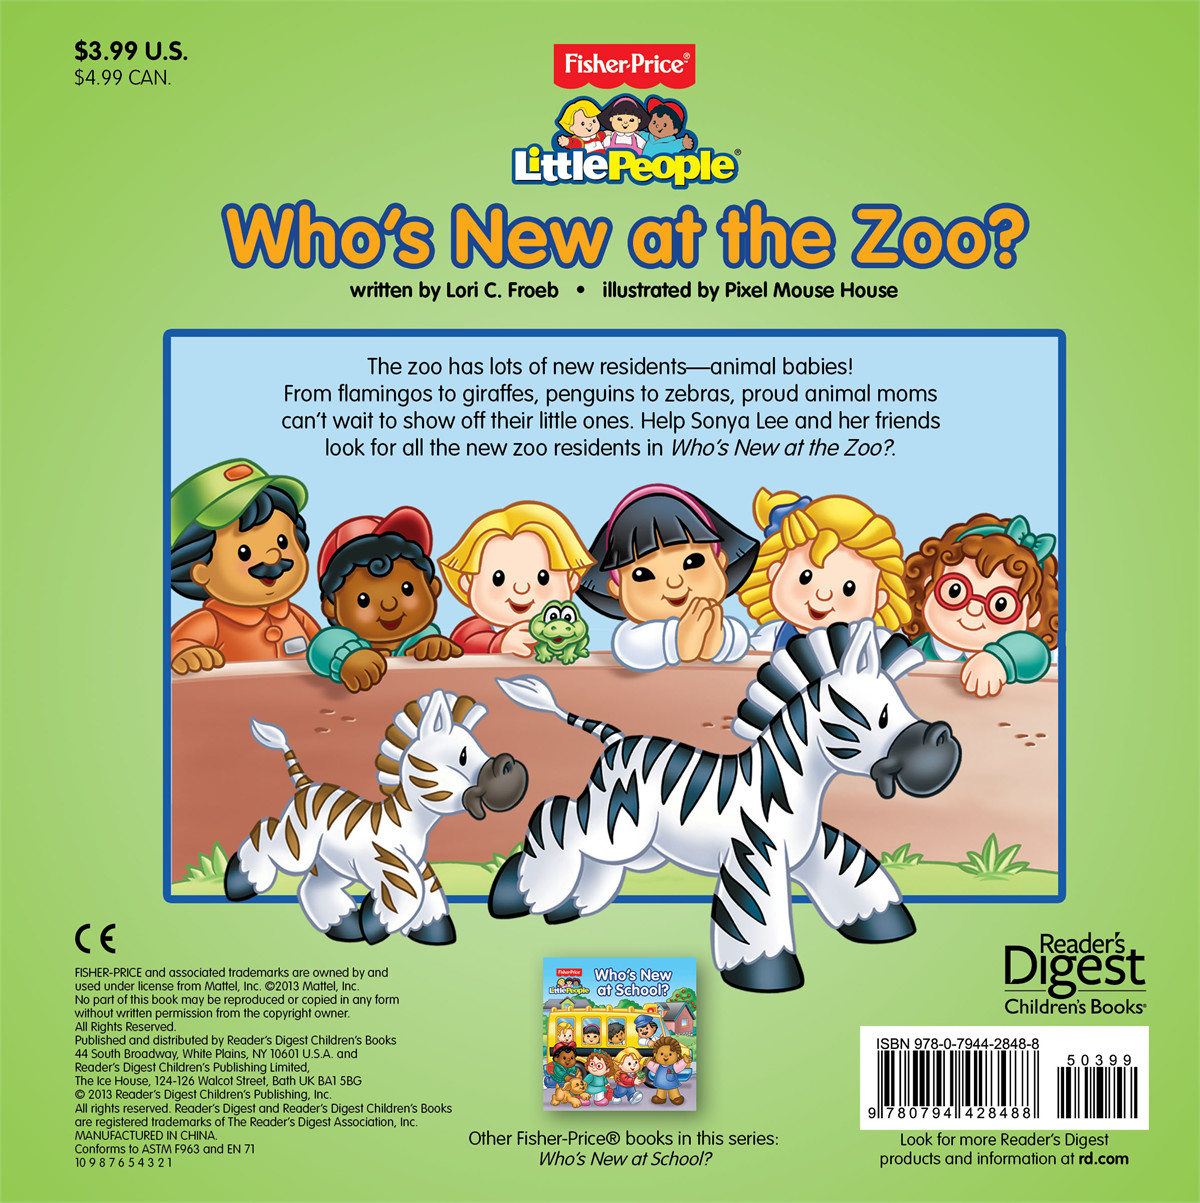 Fisher-price-little-people-who-s-new-at-the-zoo-9780794428488.in01